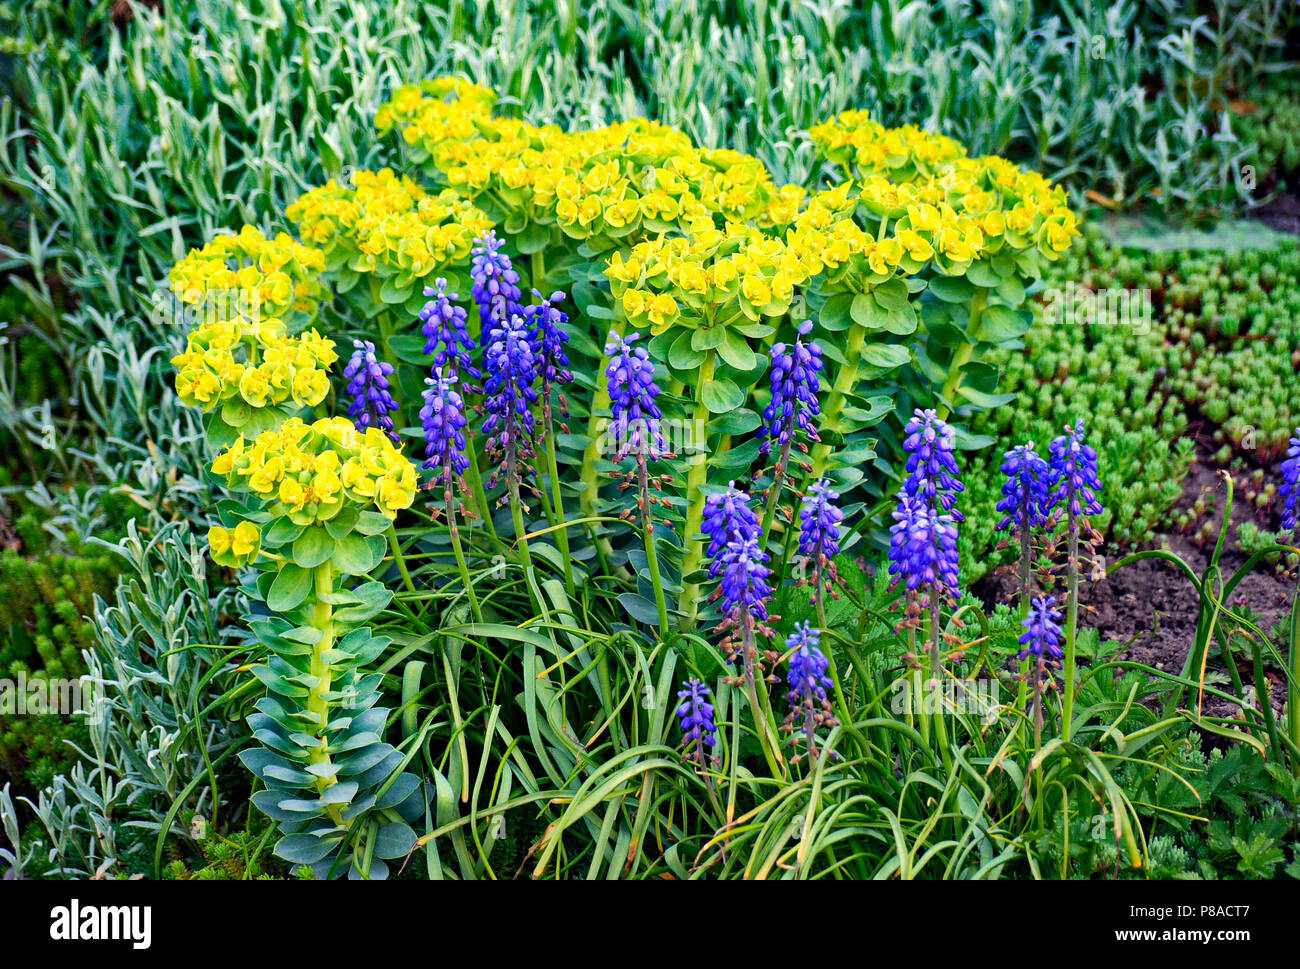 Yellow And Blue Flowers Among Green Leaves And Other Ornamental